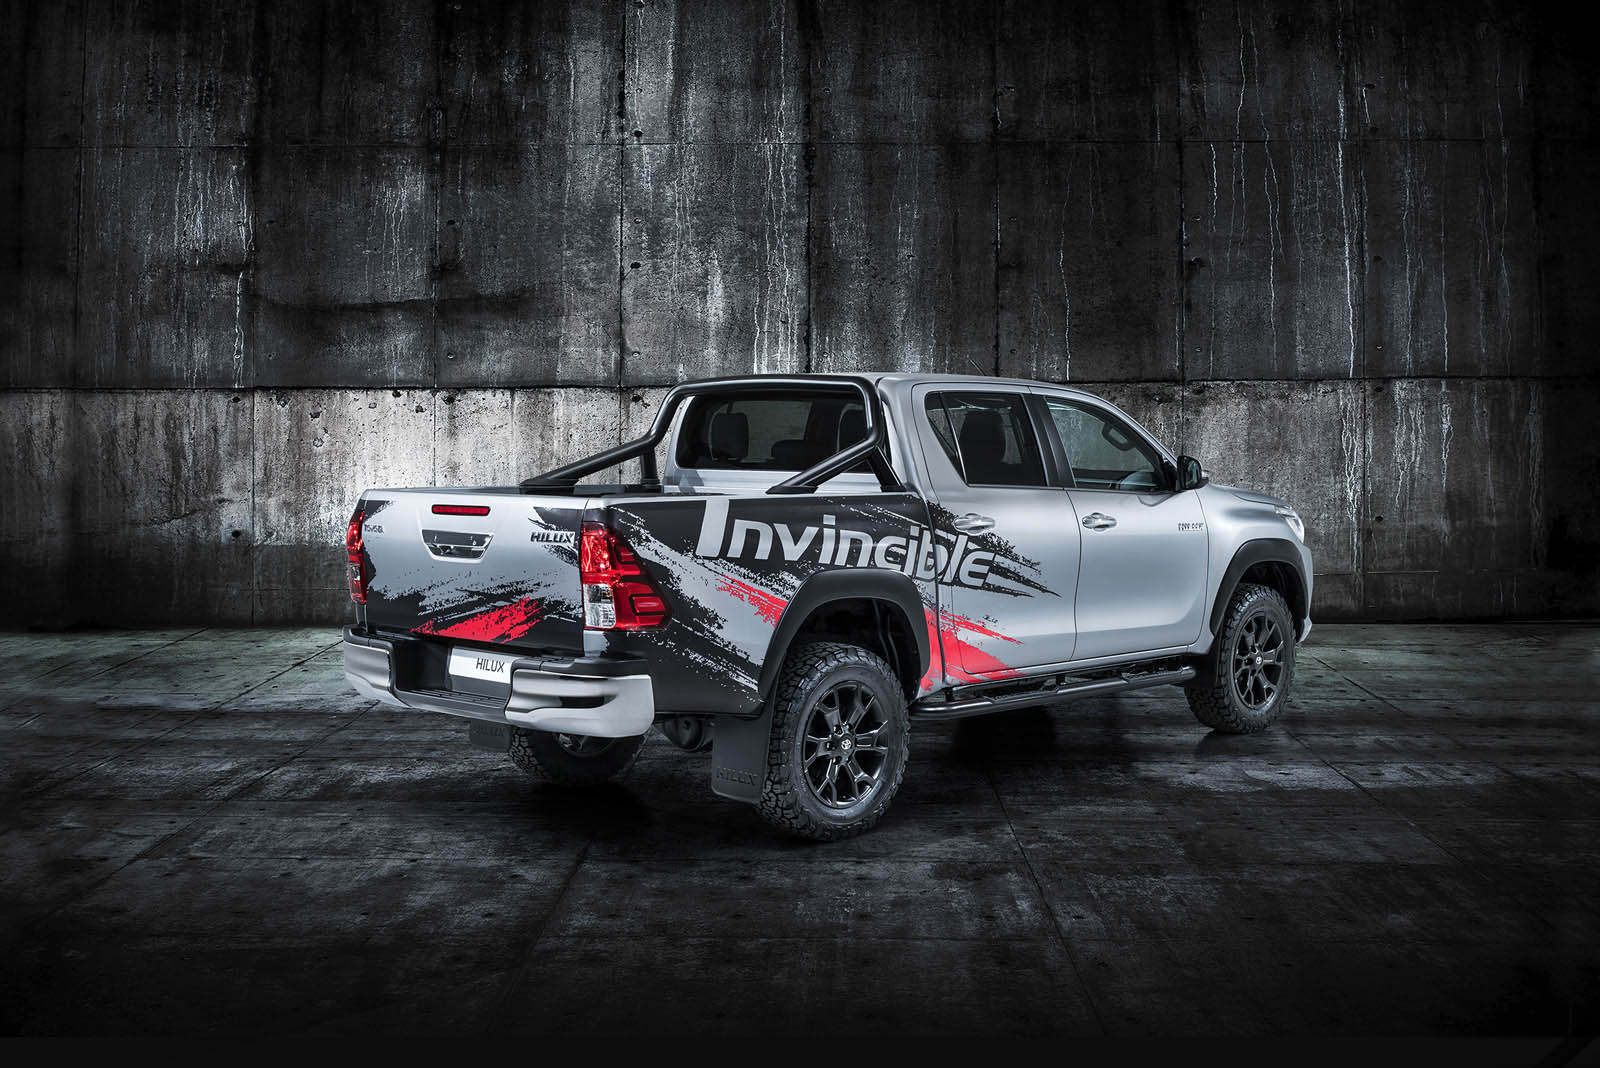 hilux goes to show toyota truck is still invincible after 50 years carscoops. Black Bedroom Furniture Sets. Home Design Ideas